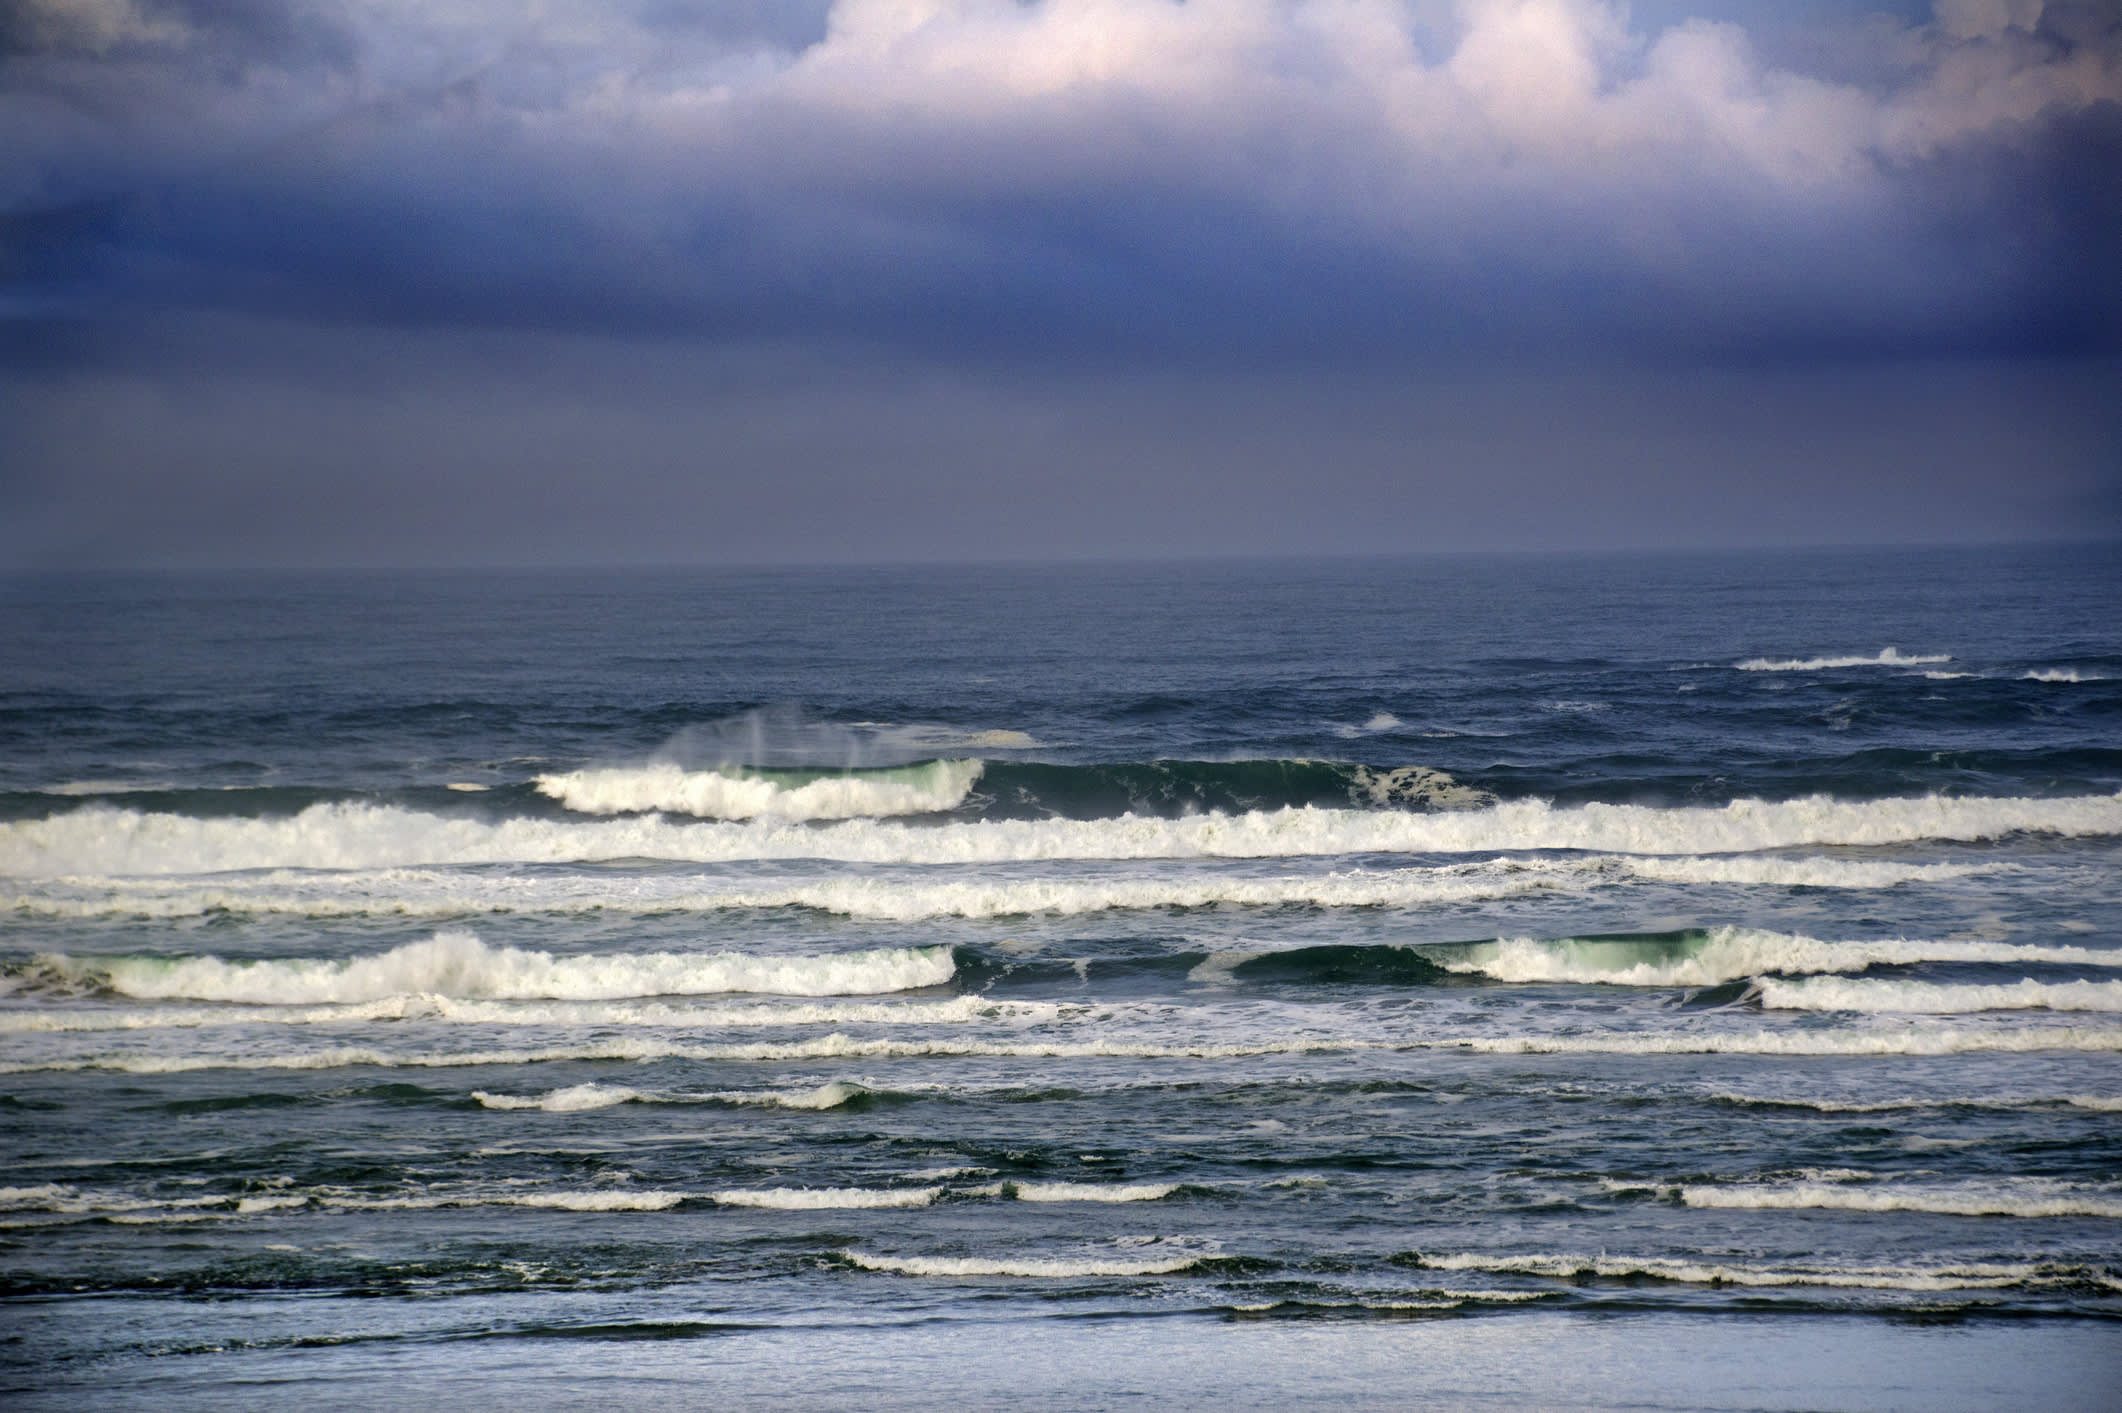 A major new facility in Oregon could help transform the prospects of wave energy